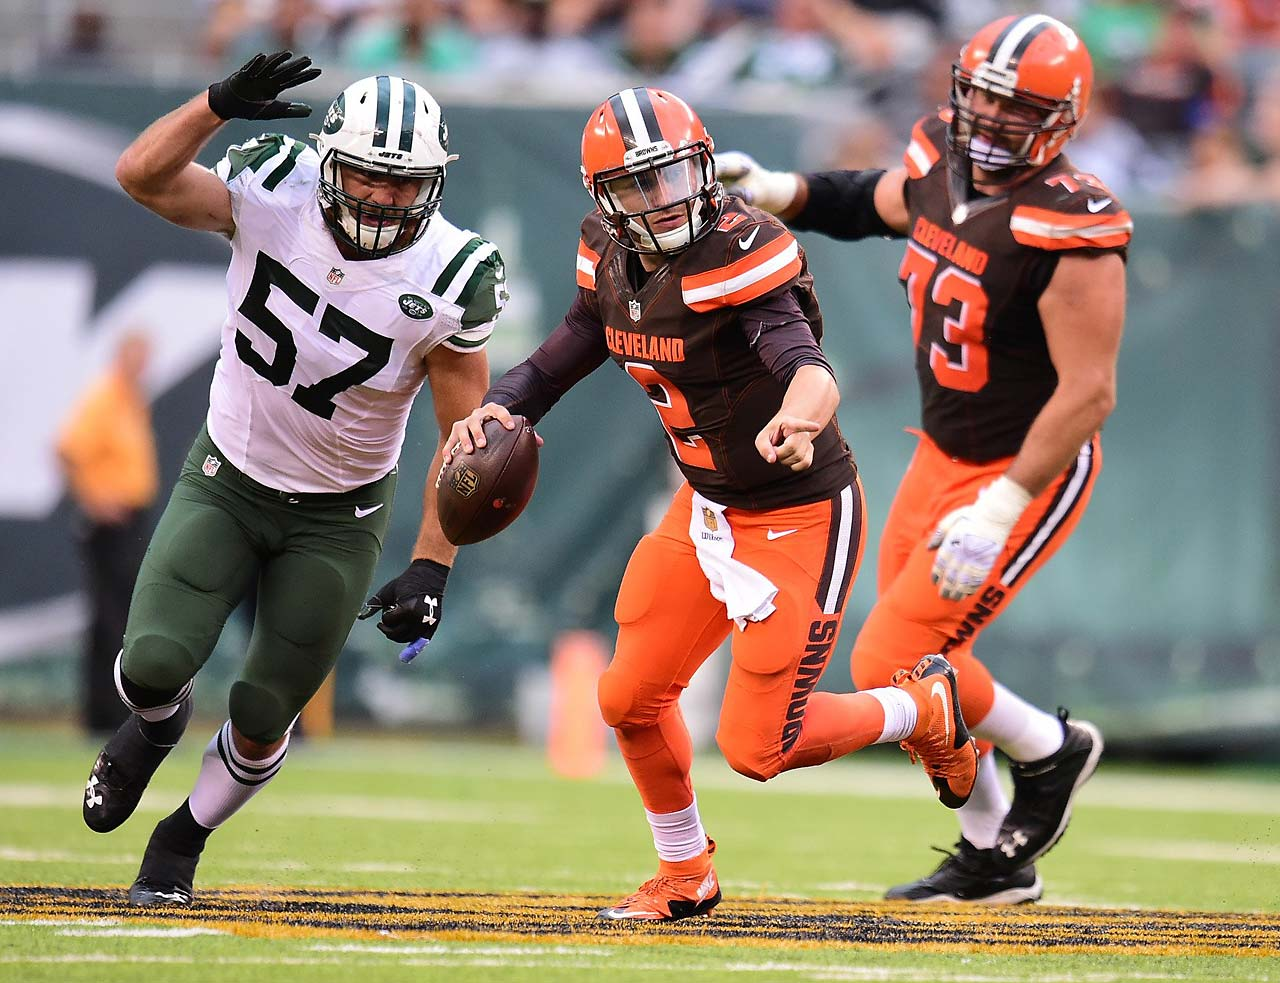 Johnny Manziel was pressed into duty in Week 1 and played an uneven game against the Jets.